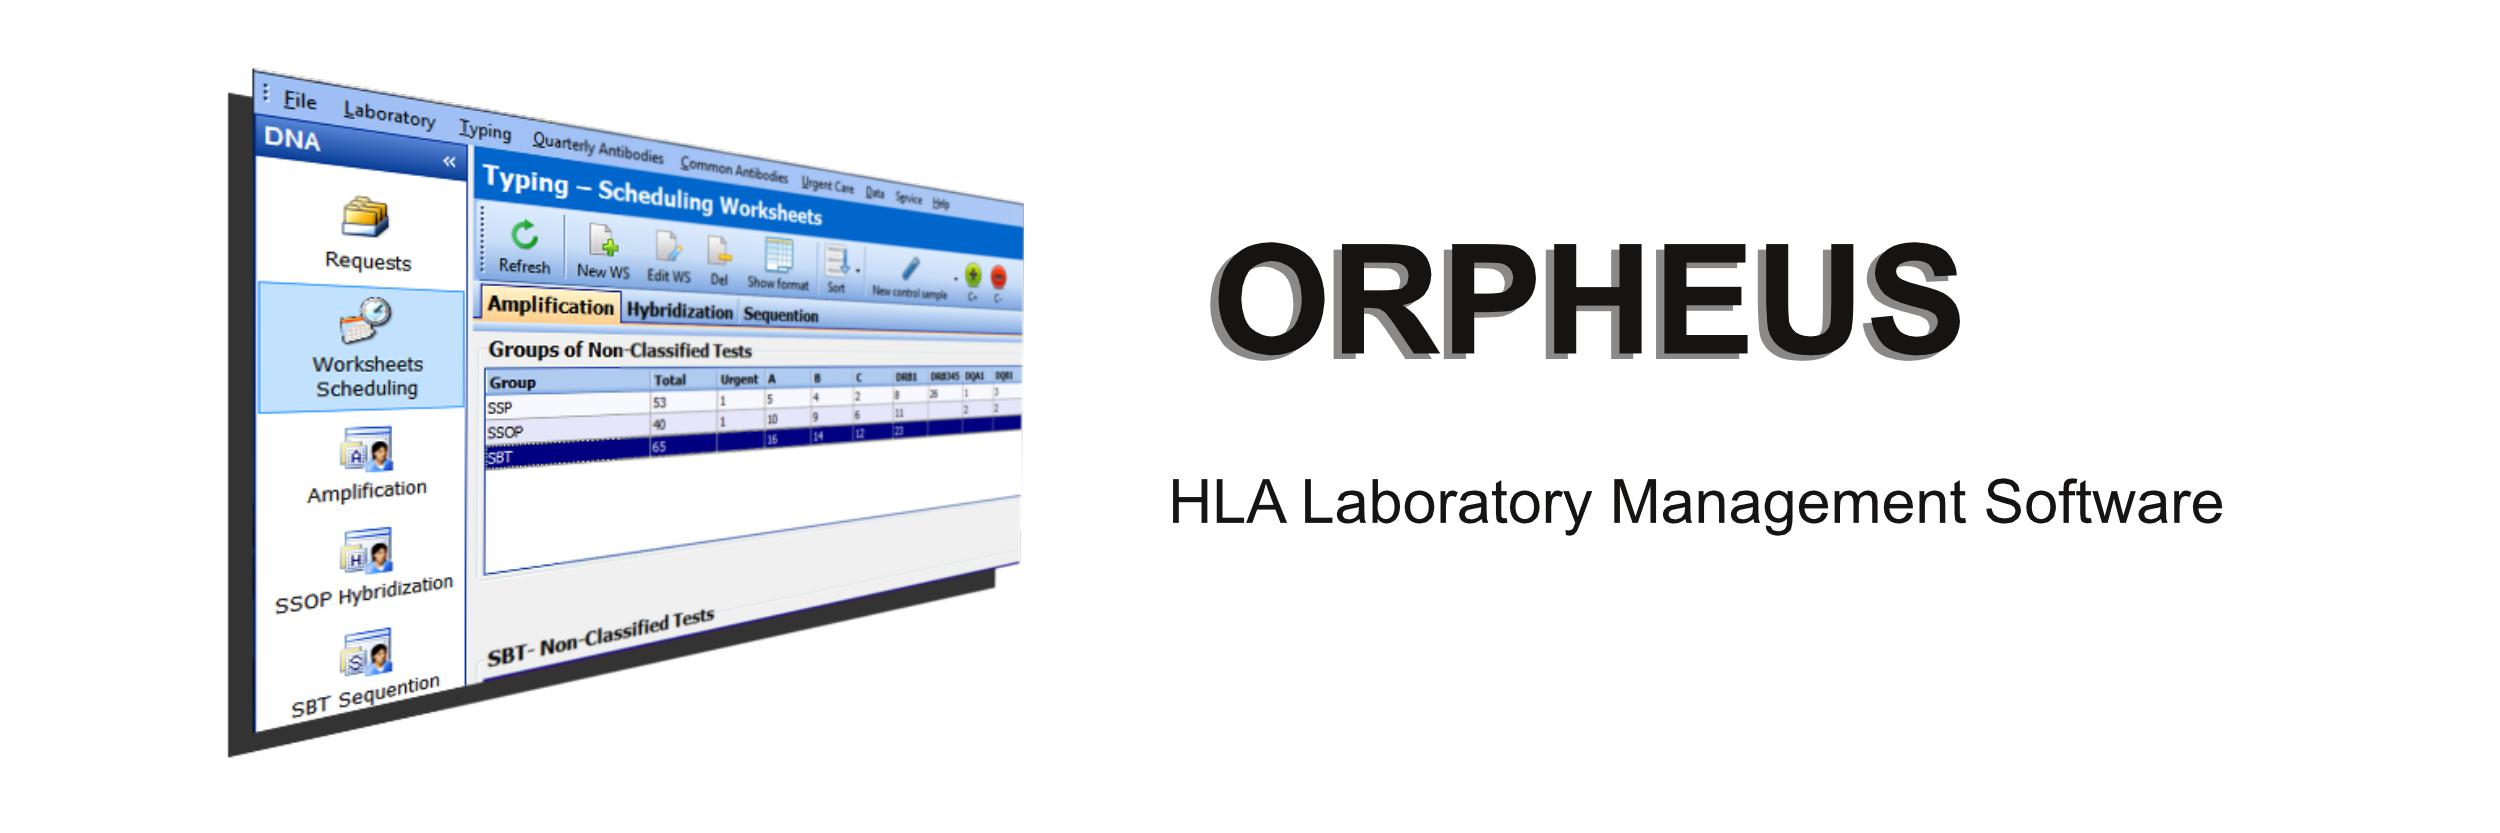 ORPHEUS - HLA Laboratory Management Software